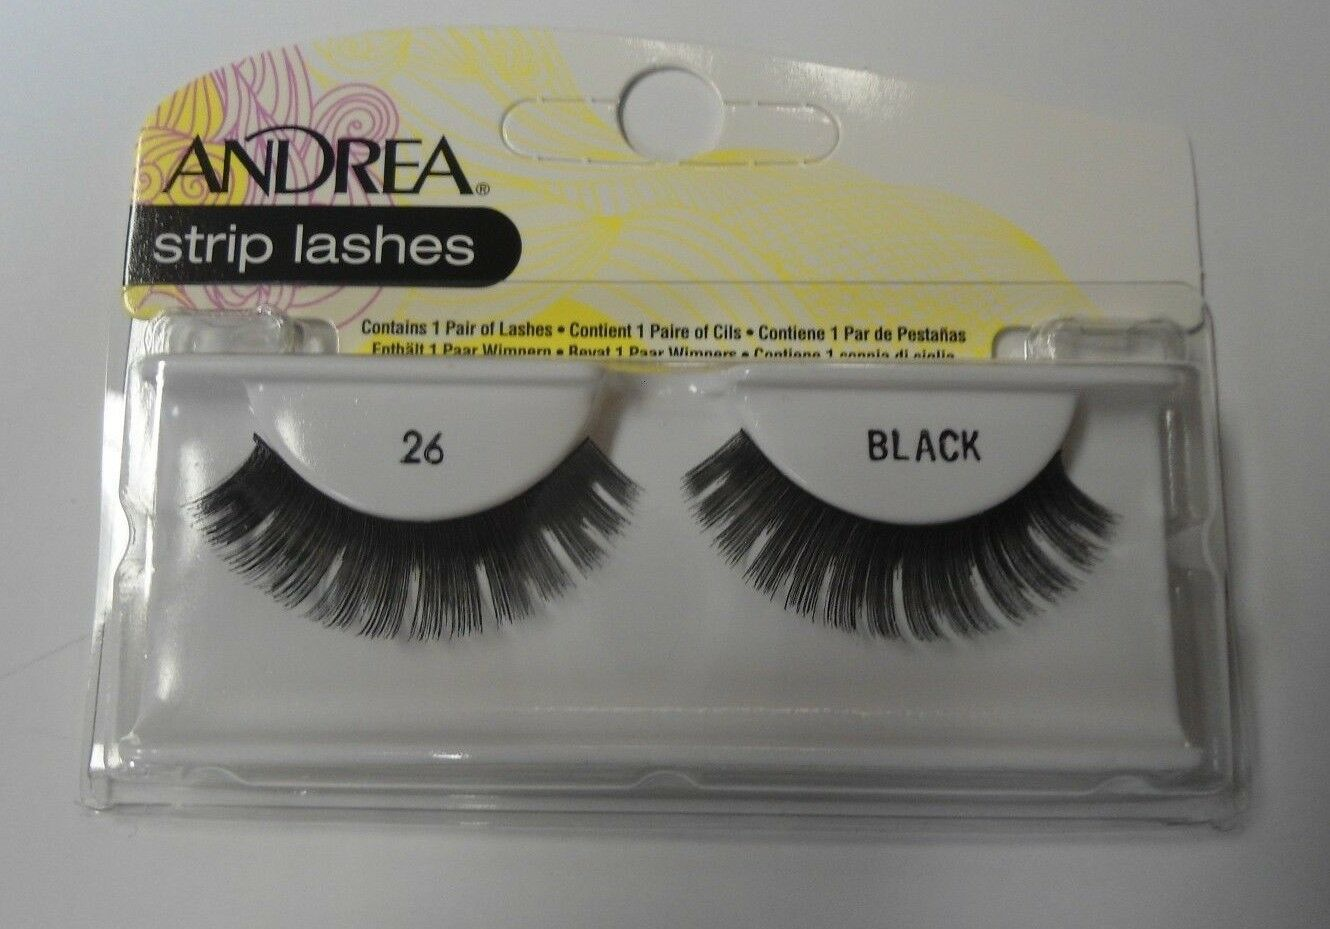 Primary image for Andrea's Strip Lashes Fashion Eye Lash Style 26 Black - (Pack of 6)